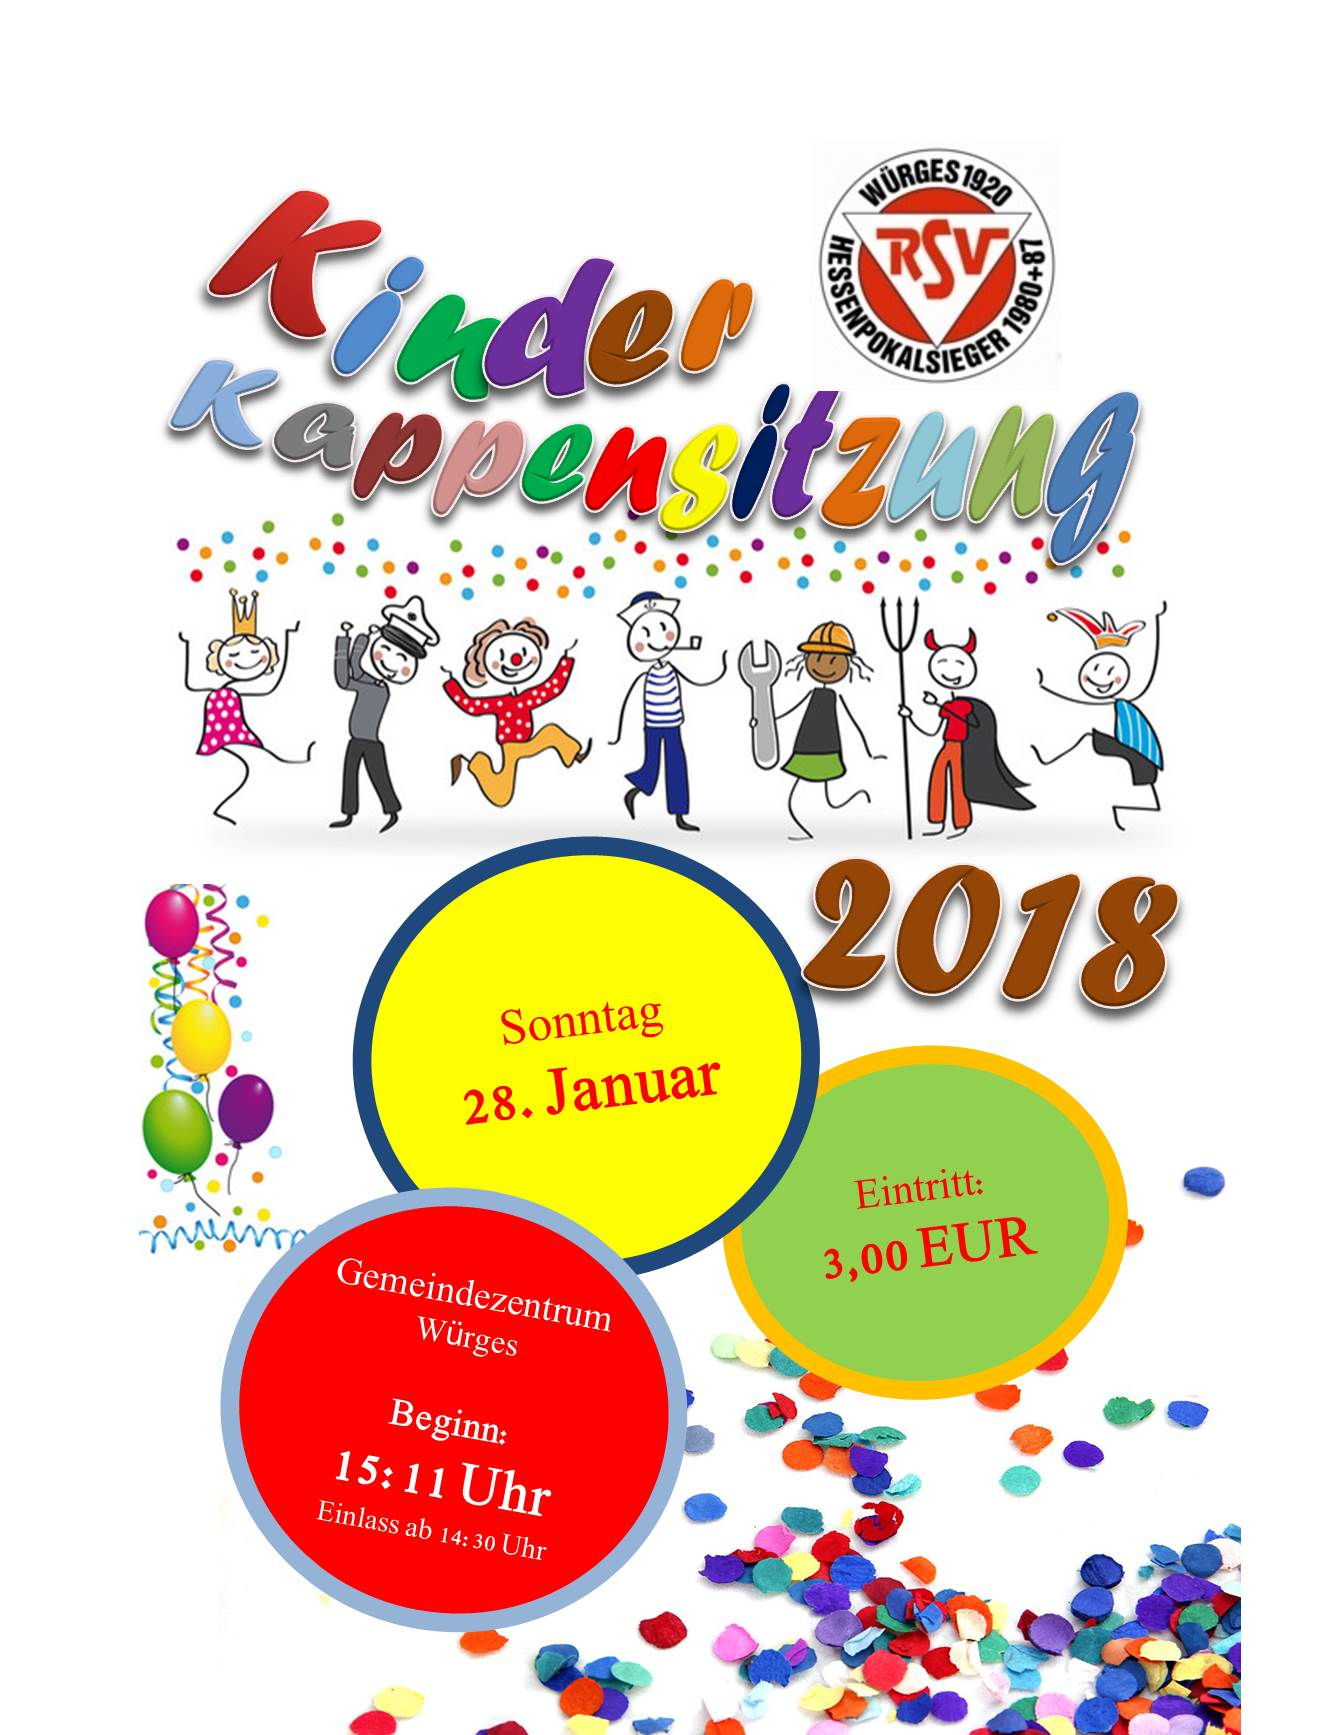 Kinderkappensitzung in Bad Camberg-Würges 2018